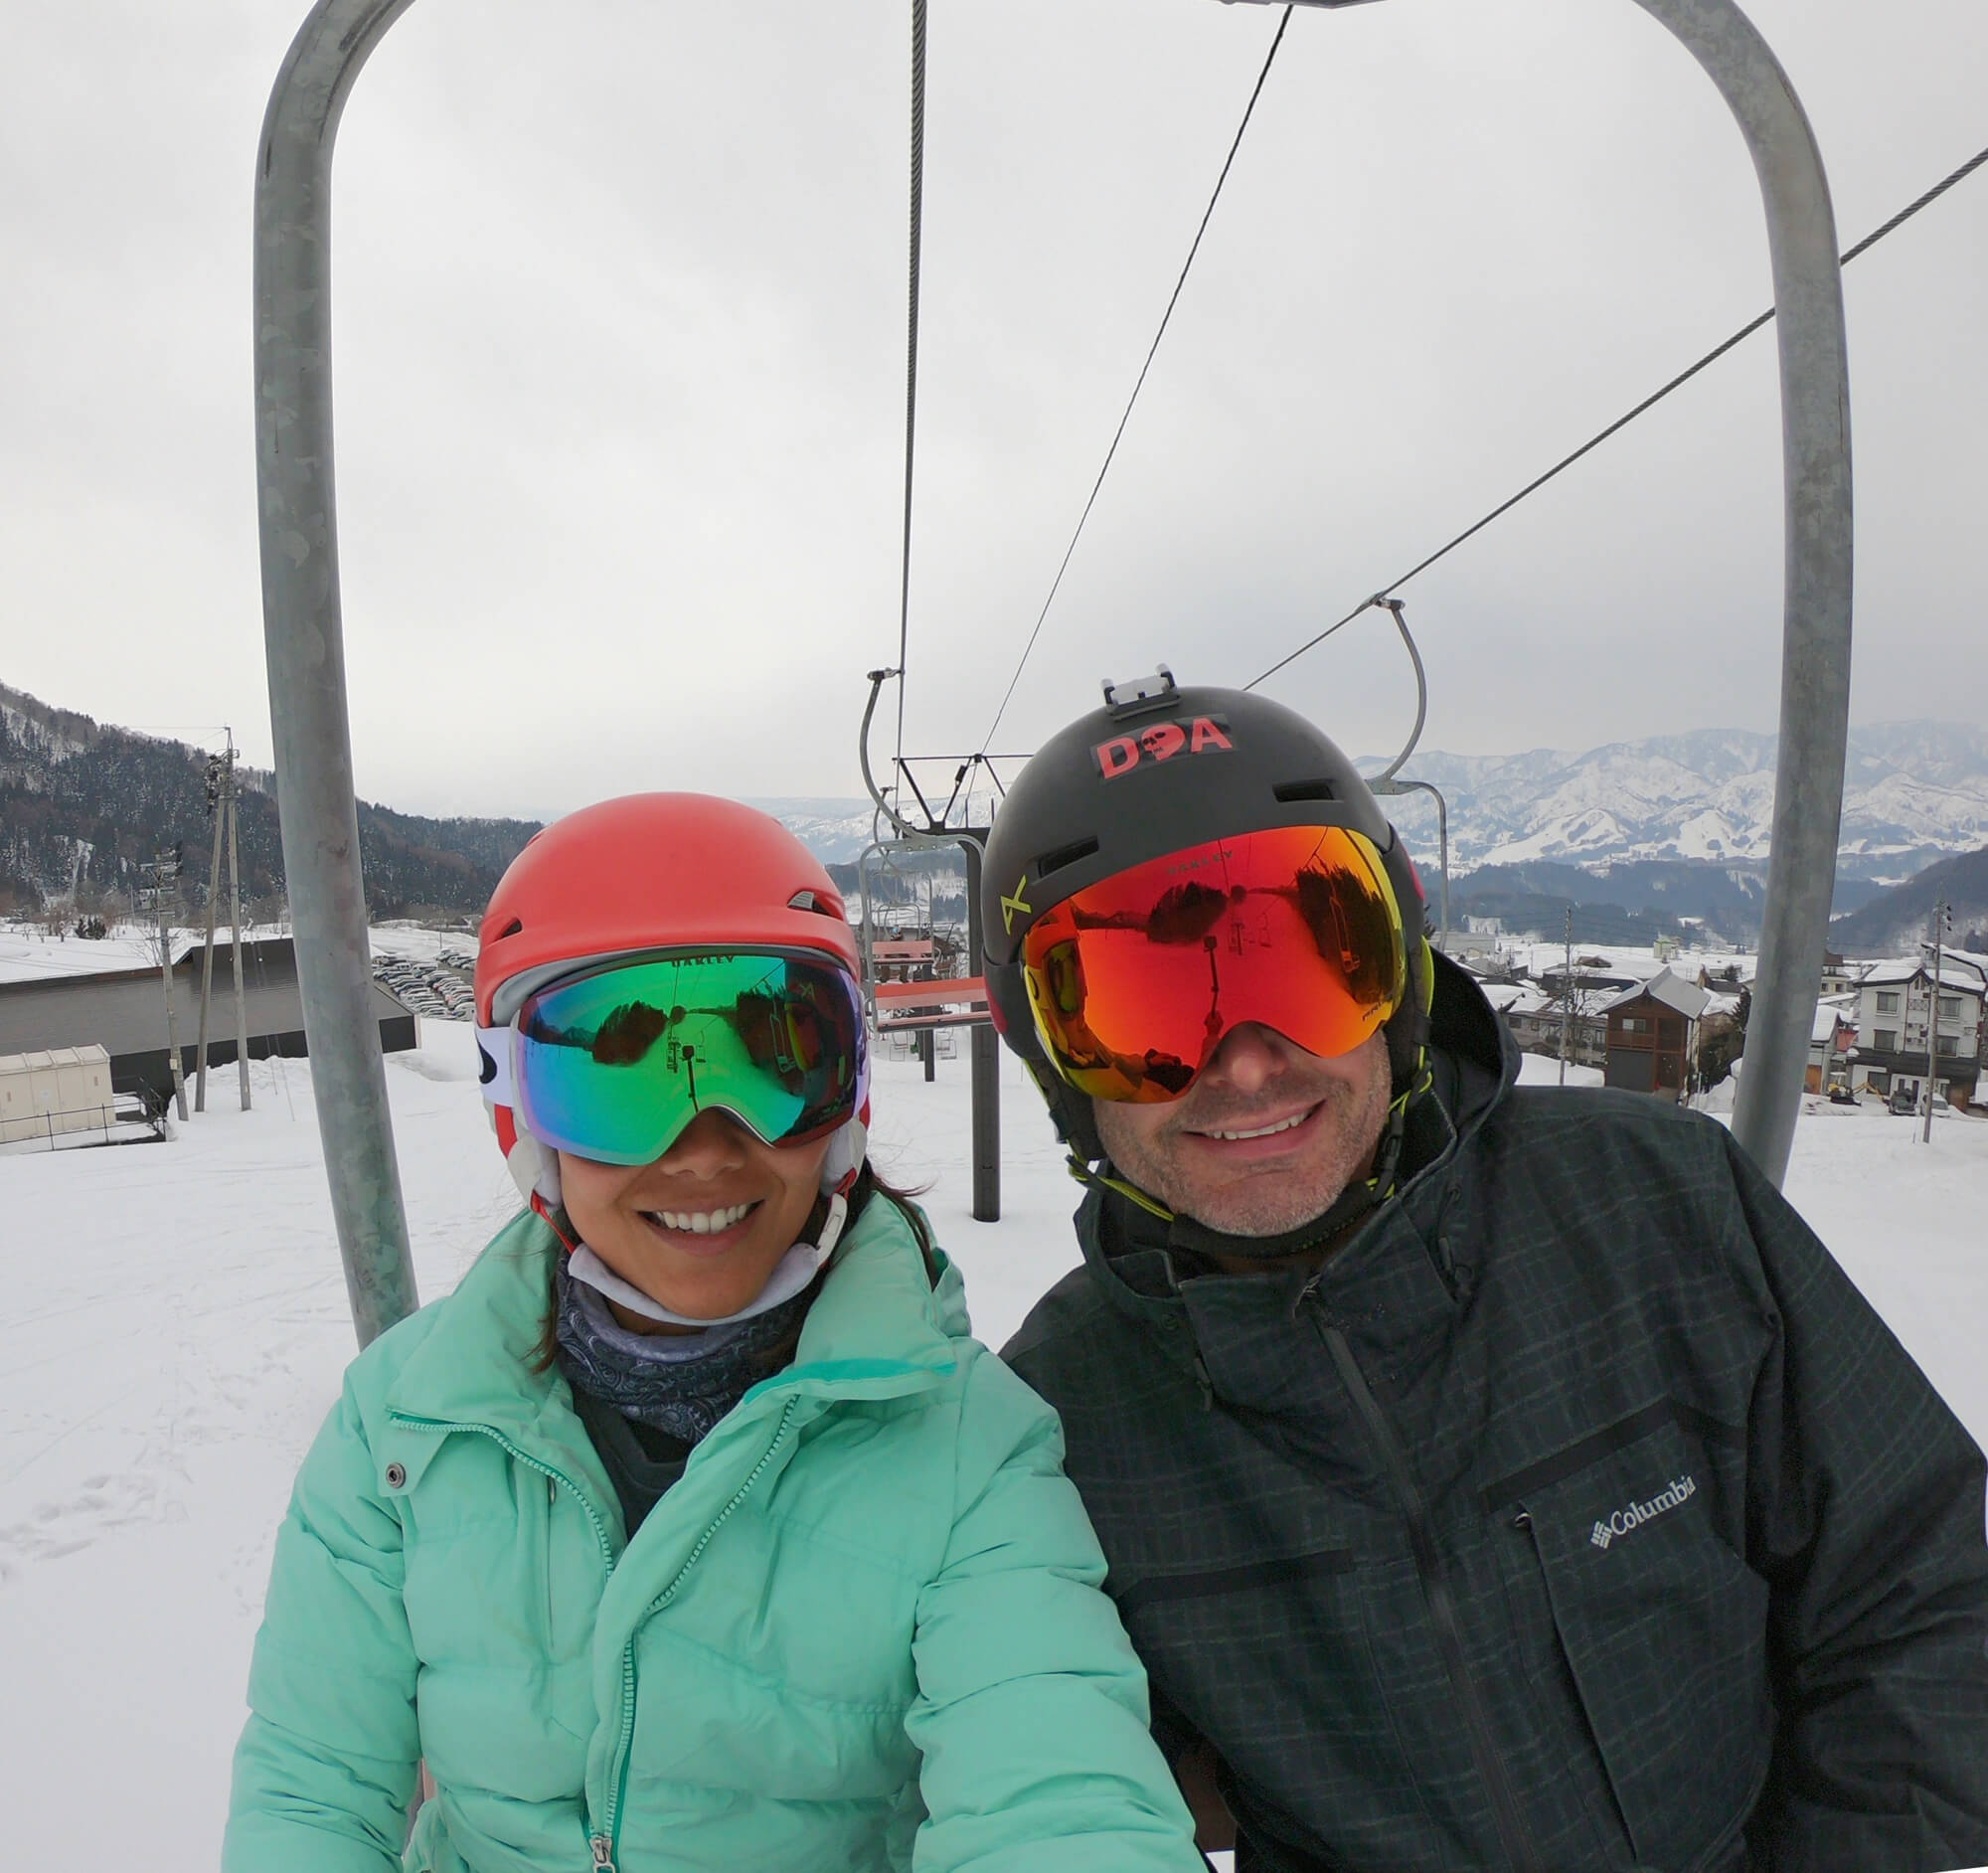 CUTE LITTLE 2 SEATER CHAIRLIFT!